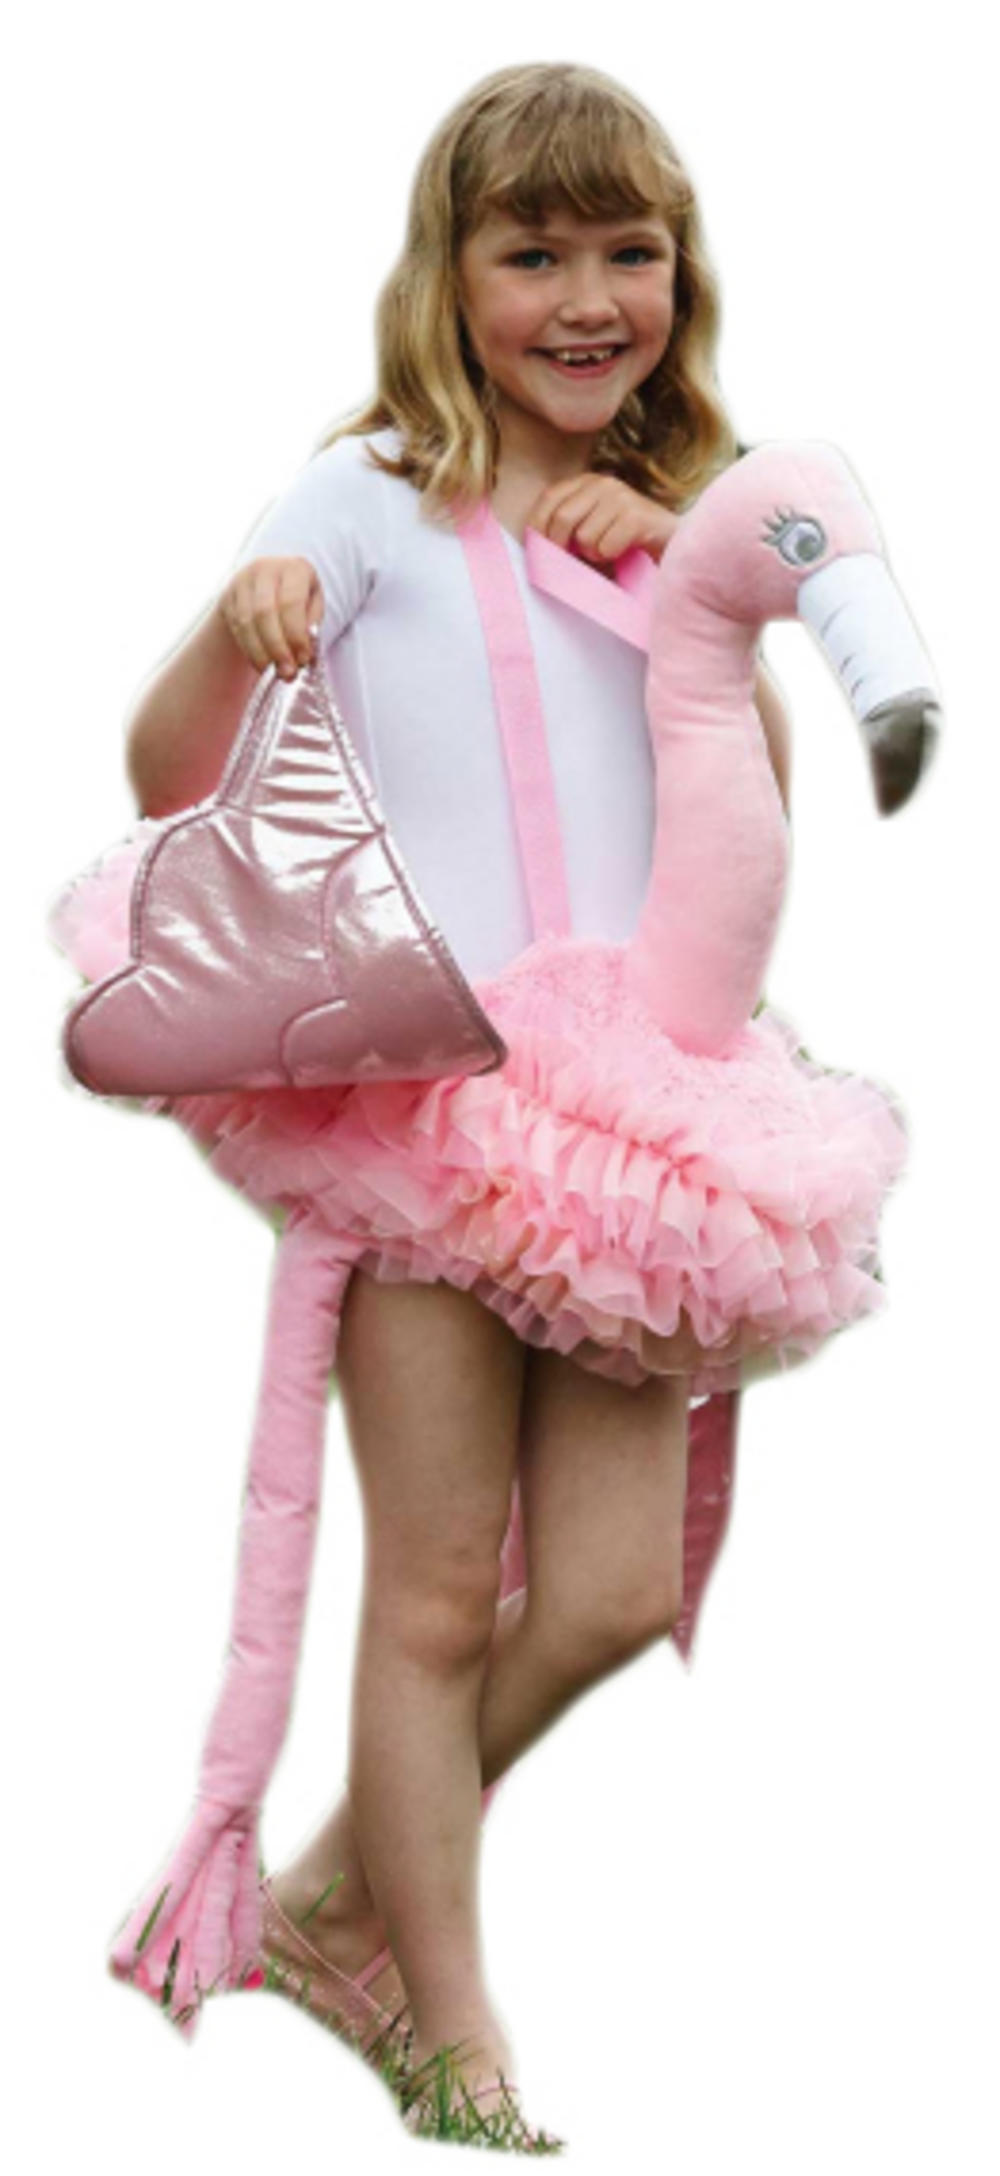 Ride on Flamingo Kids Costume  sc 1 st  Mega Fancy Dress & Ride on Flamingo Kids Costume | TV Book and Film Costumes | Mega ...